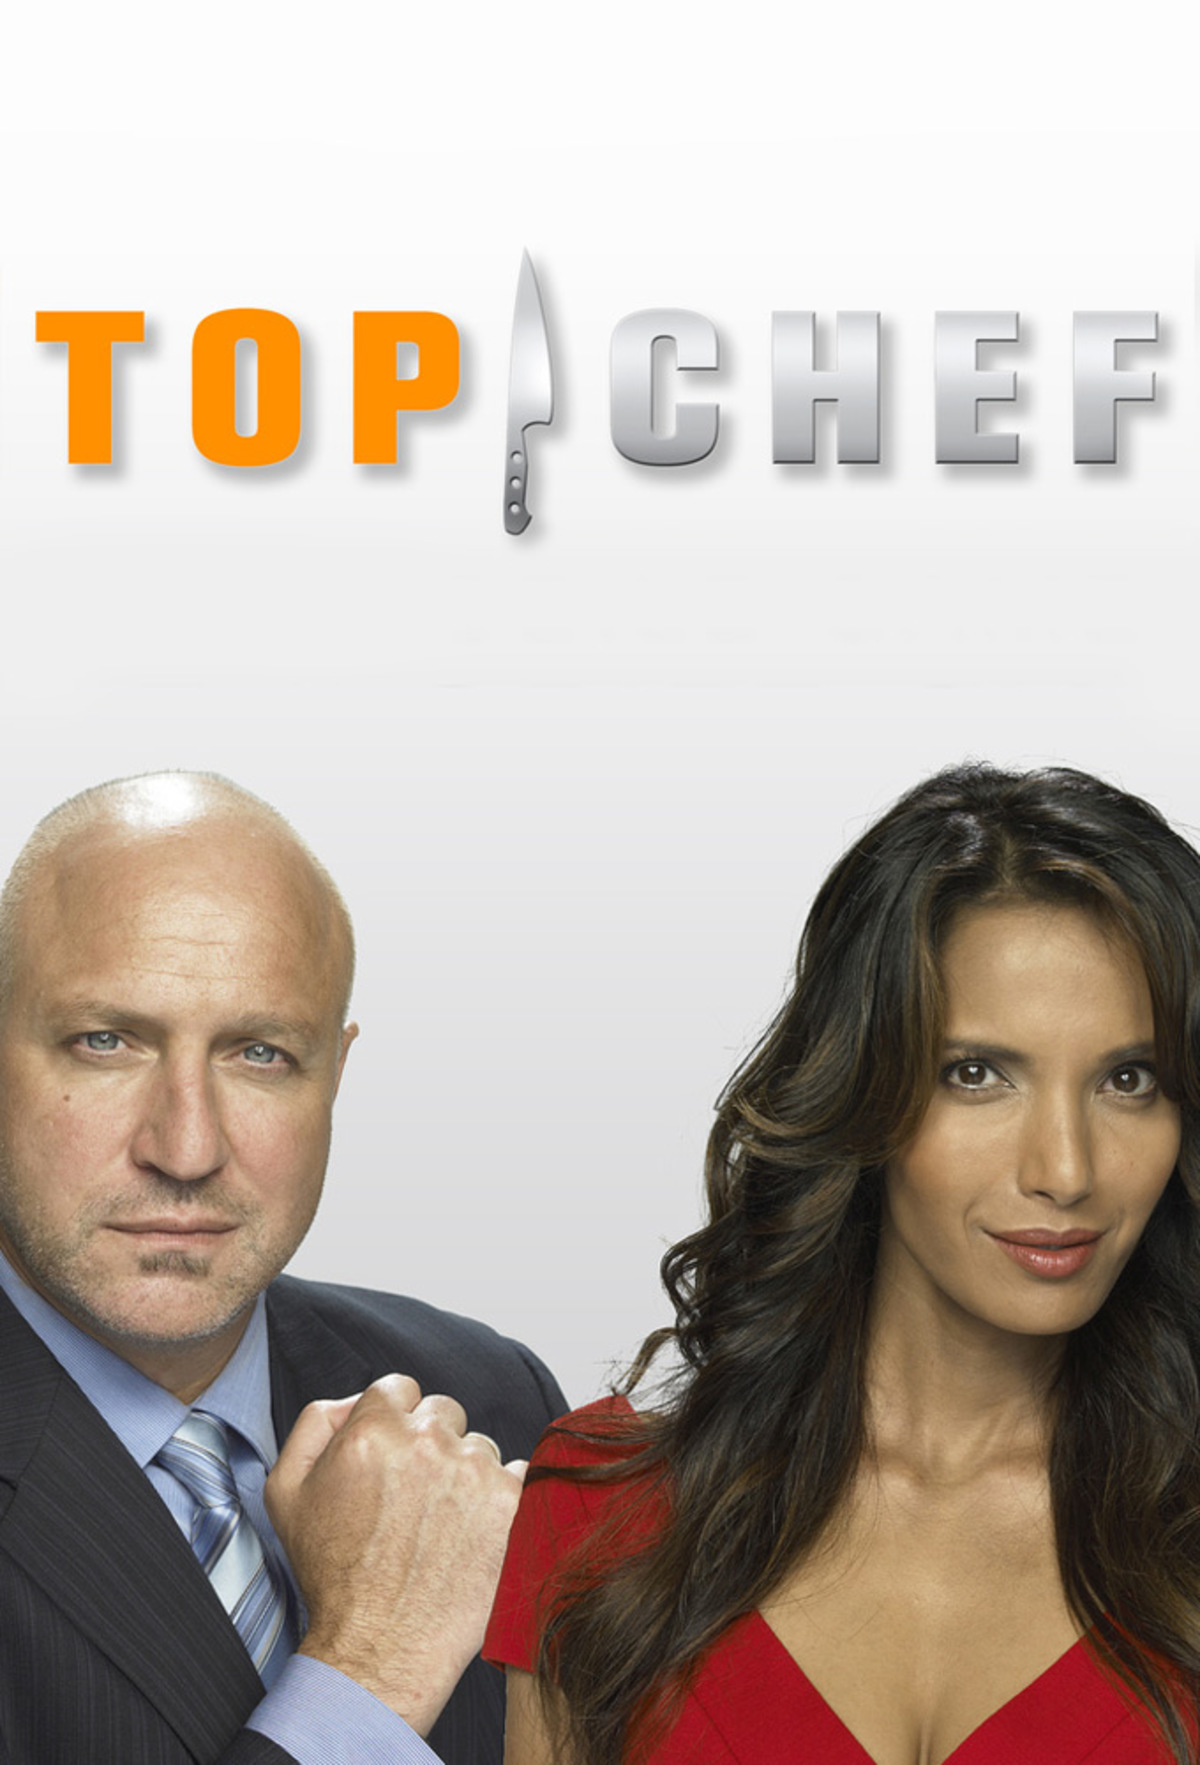 Top Chef - Season 17 Episode 6